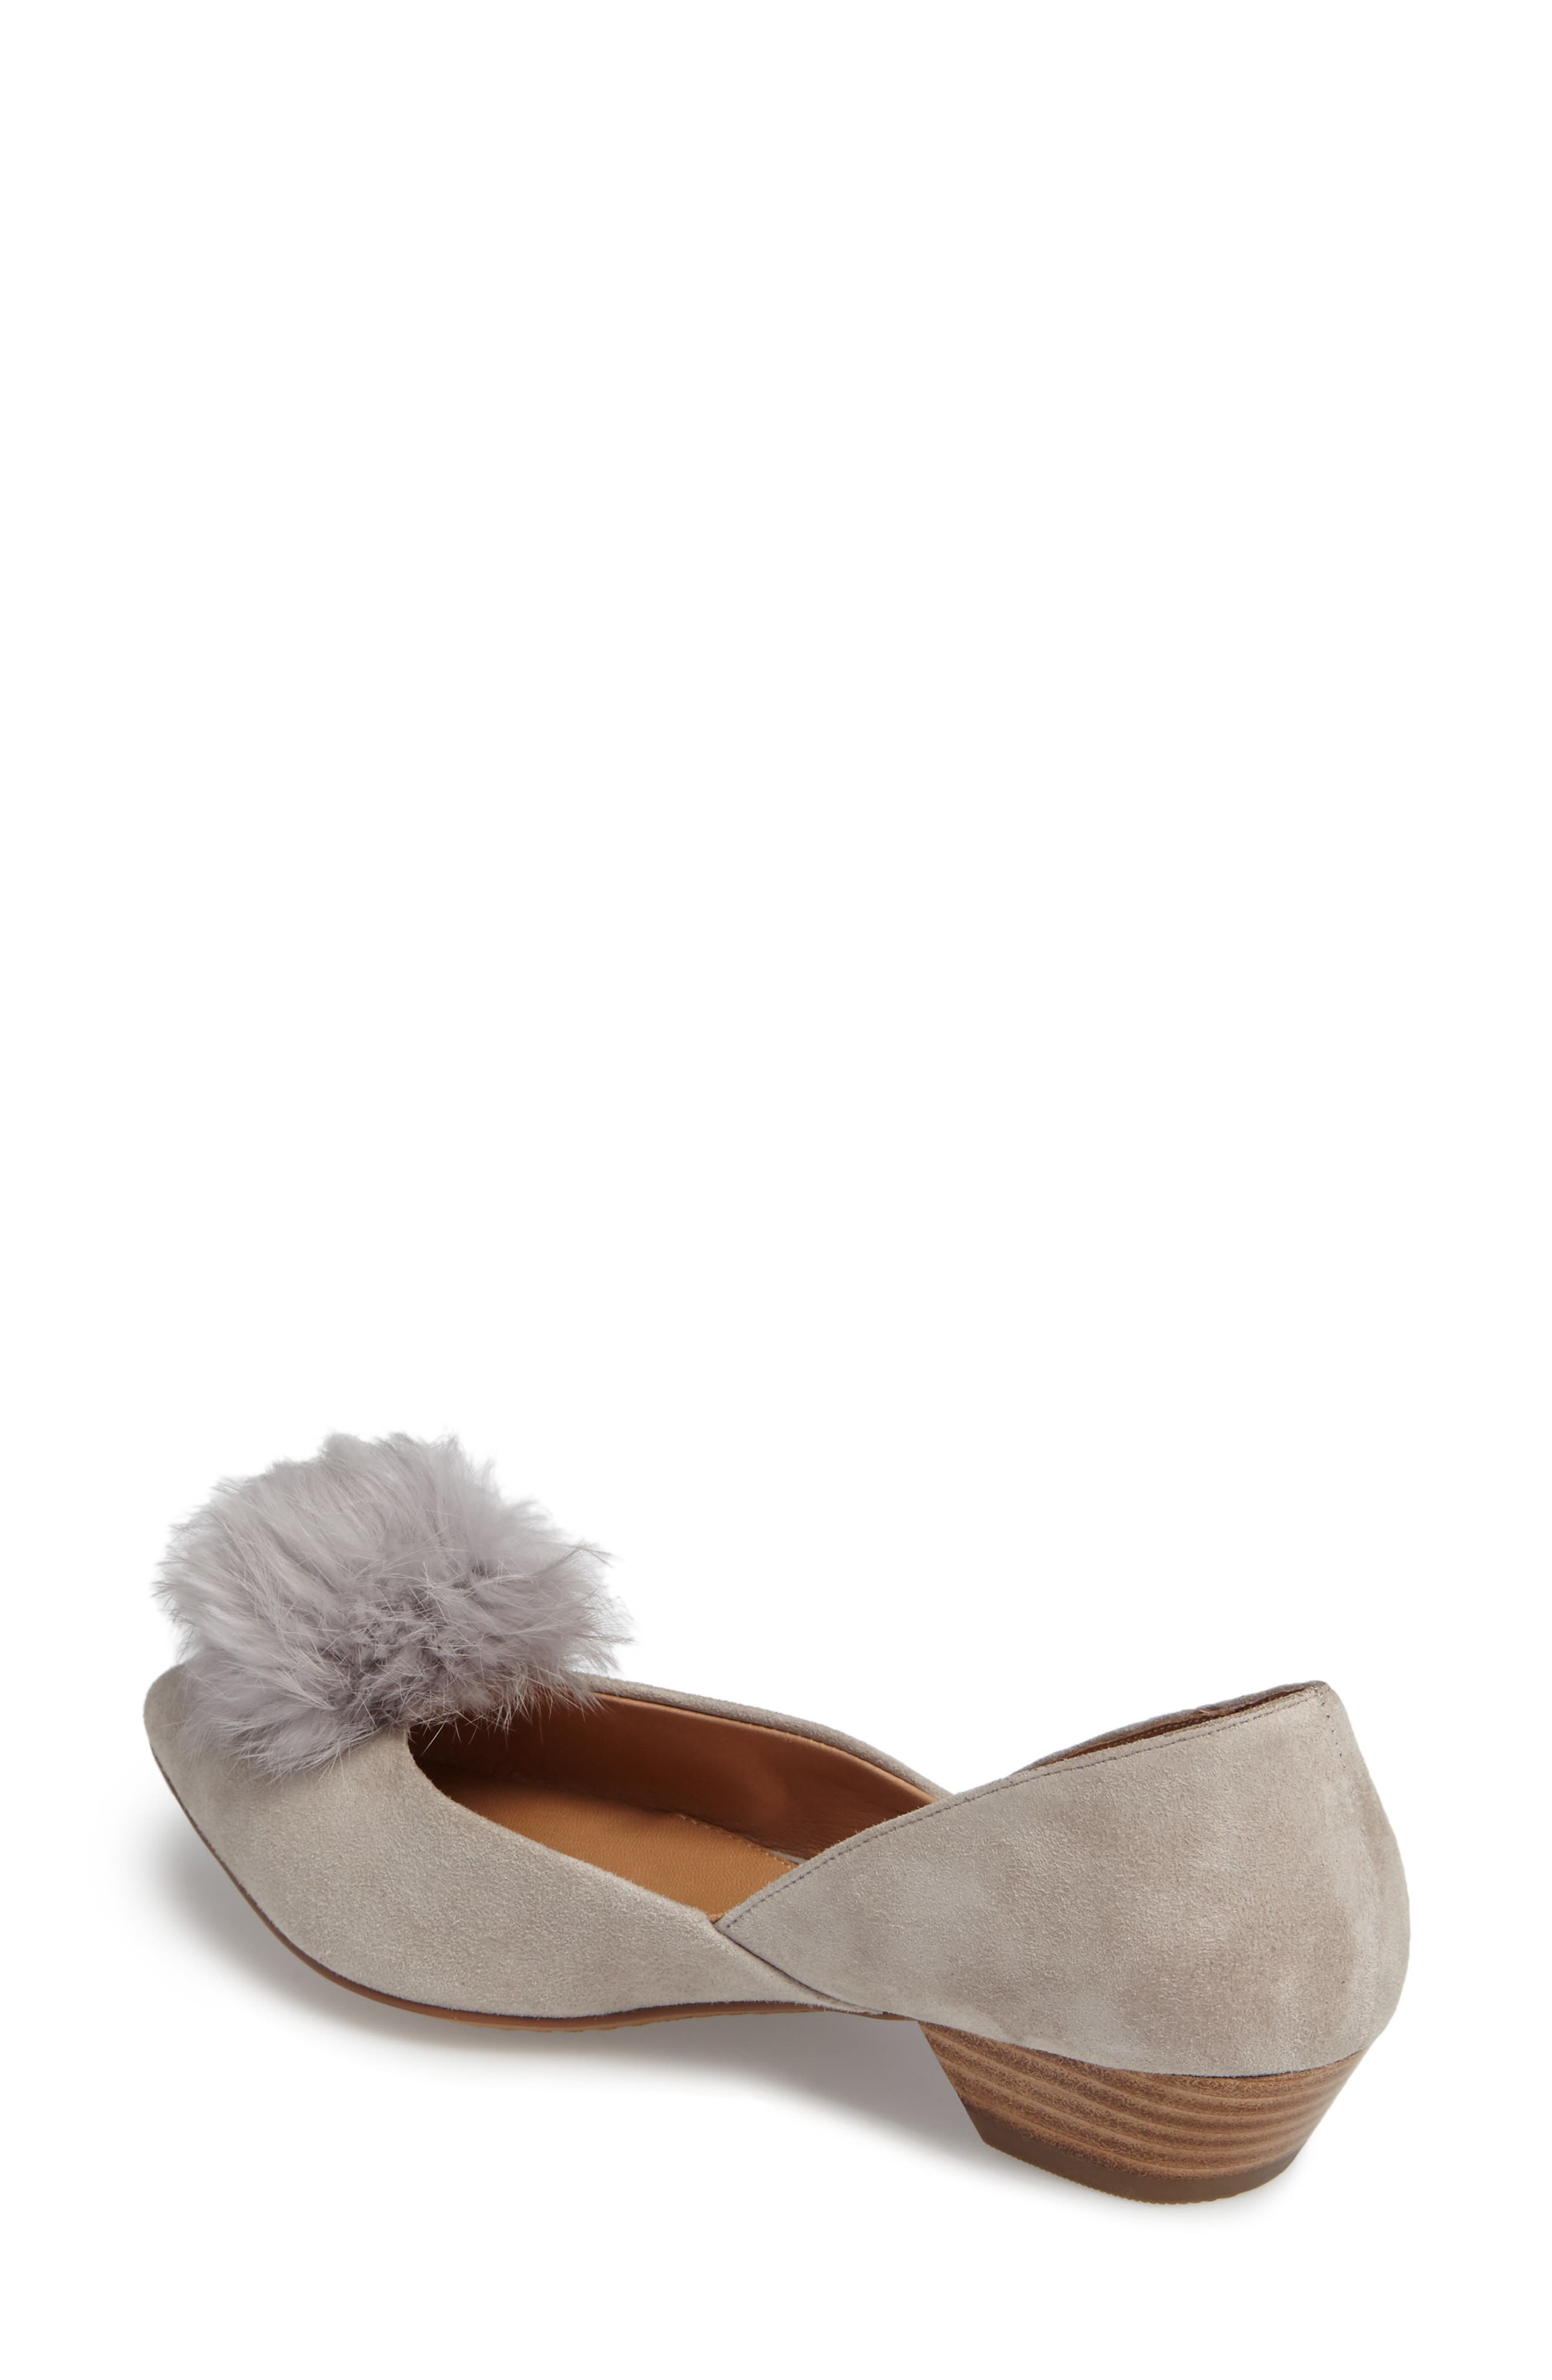 Alternate Image 2  - Linea Paolo Camille Pump with Genuine Rabbit Fur Pom (Women)